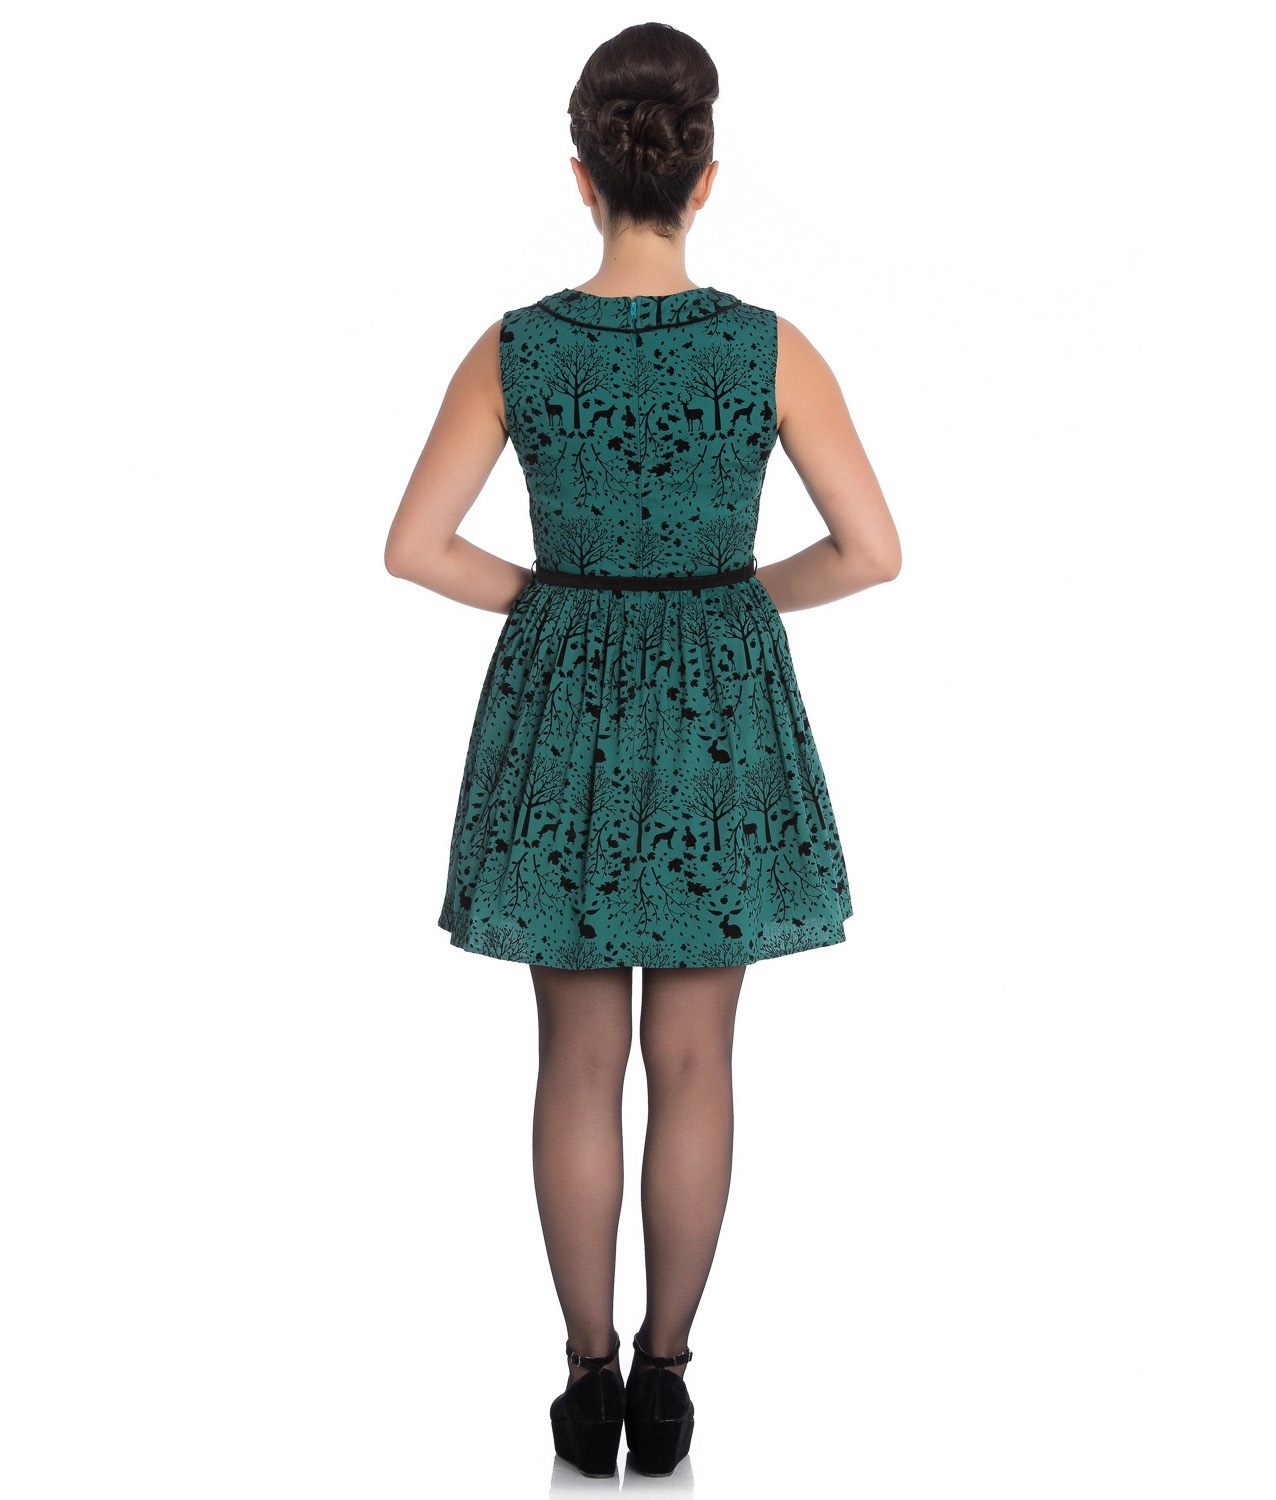 Hell-Bunny-50s-Mini-Skater-Dress-Woodland-Trees-SHERWOOD-Dark-Green-All-Sizes thumbnail 17